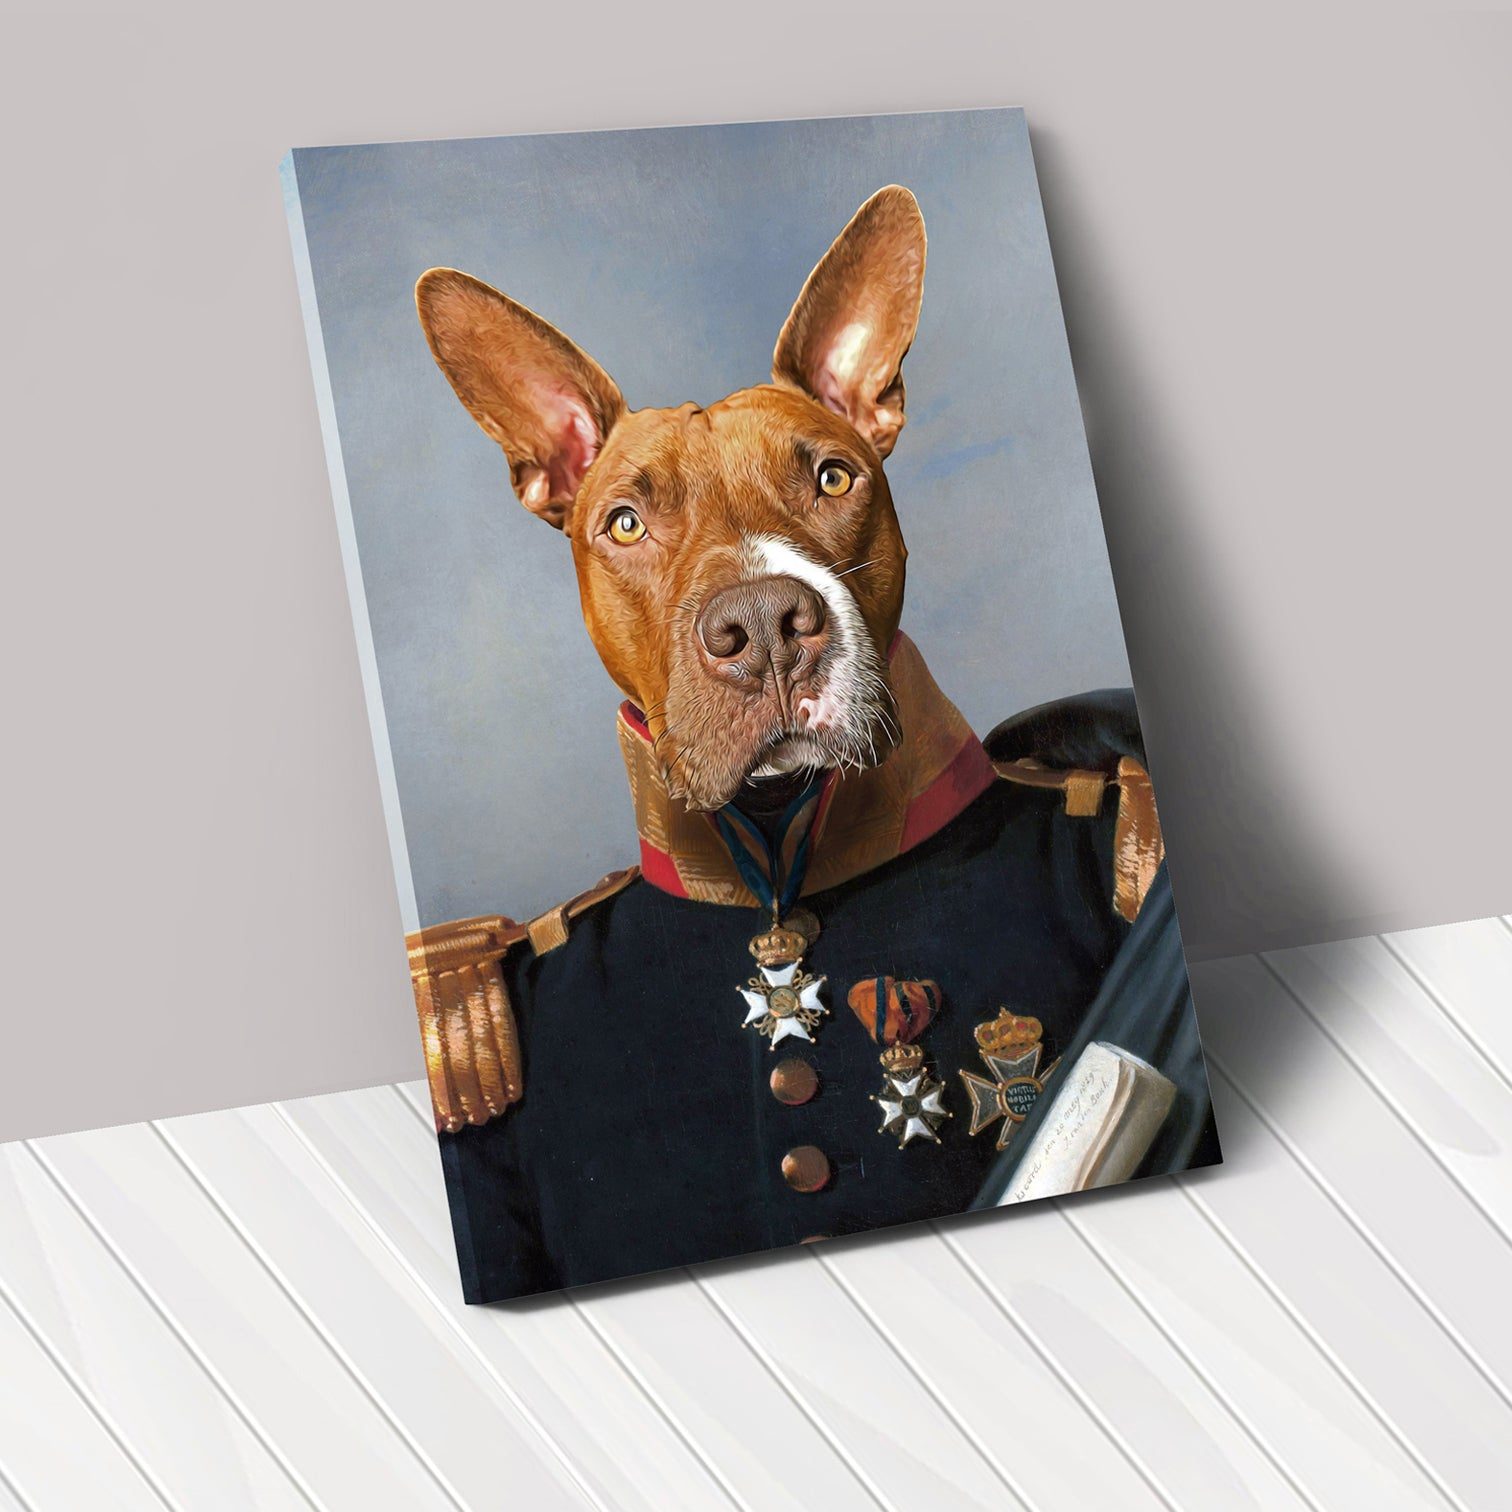 THE CAPTAIN - Renaissance Pet Portrait